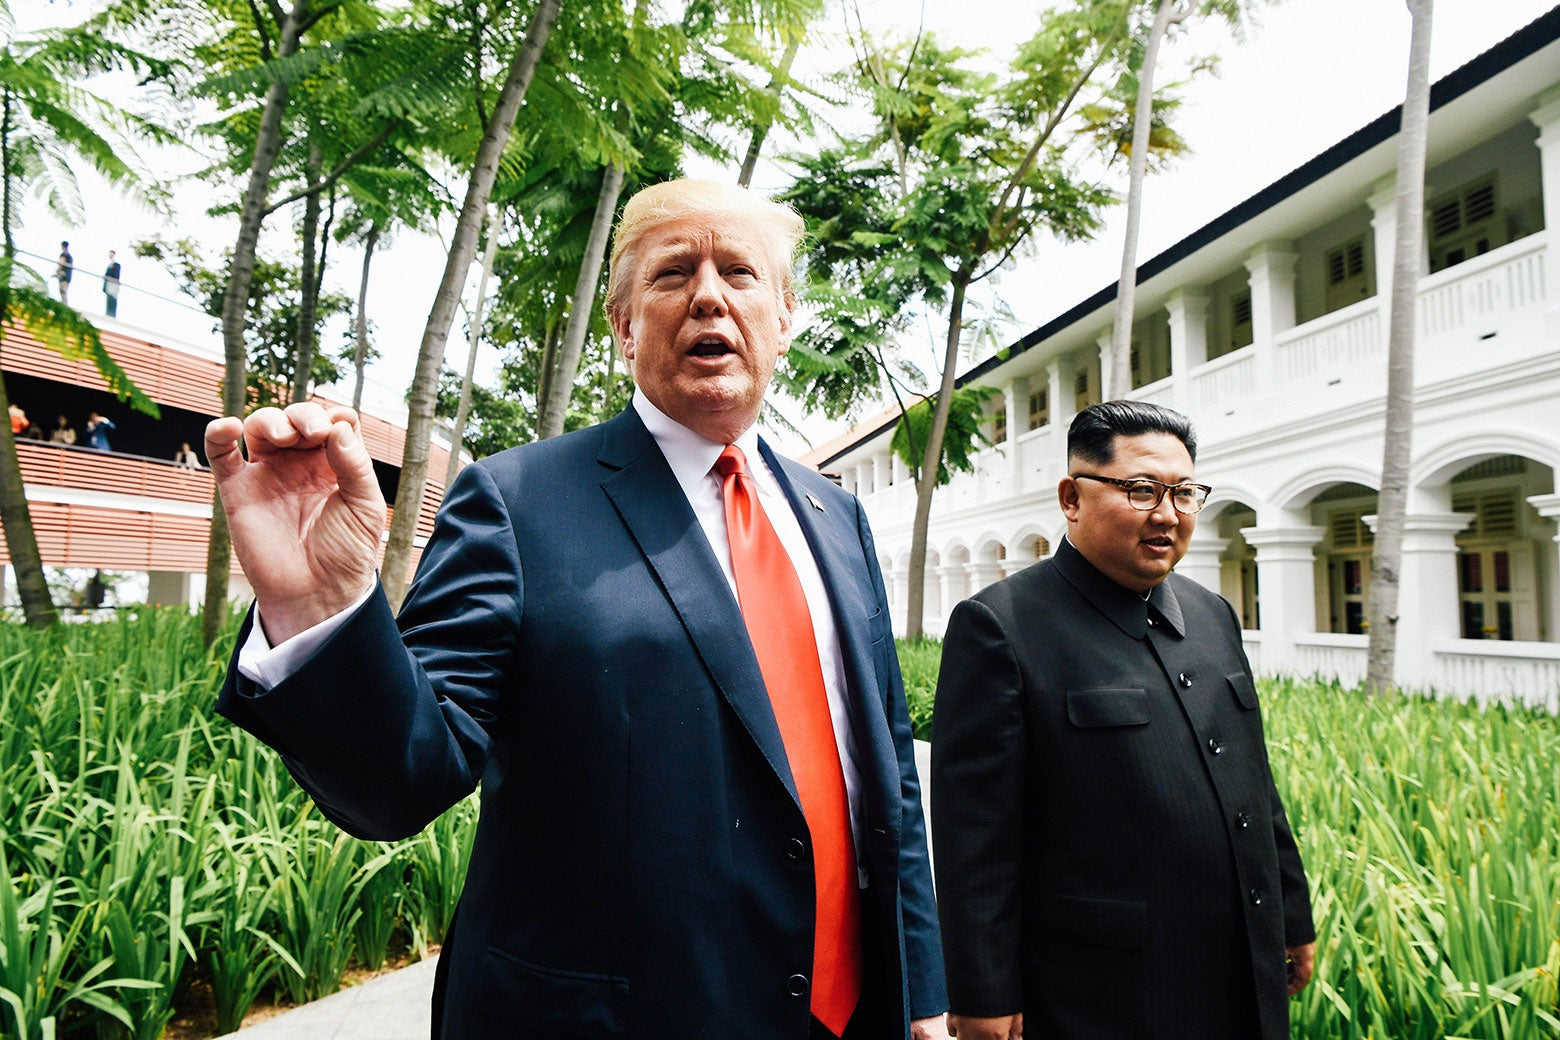 U.S. President Donald Trump speaks to the media as he walks with North Korean leader Kim Jong-un during a break in talks at their summit at the Capella Hotel on Sentosa island in Singapore on Tuesday.